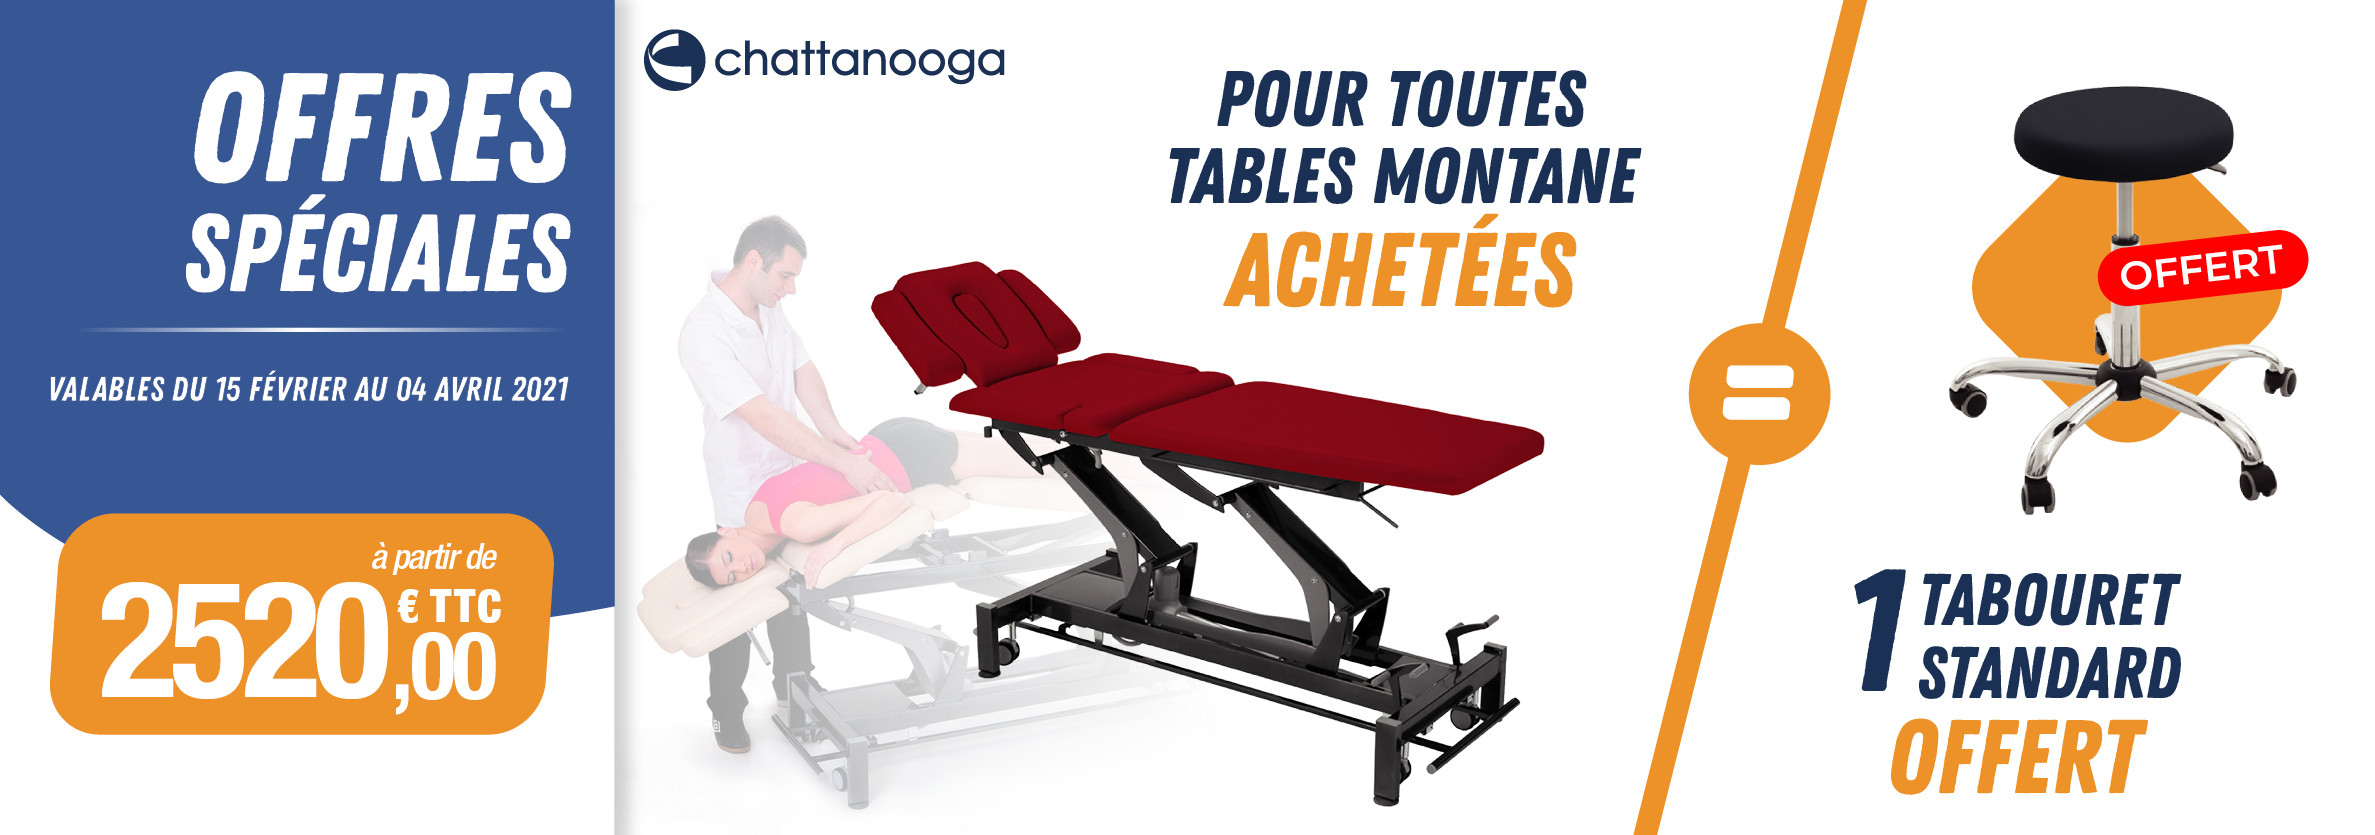 Offres spéciales Chattanooga - Tables Montane